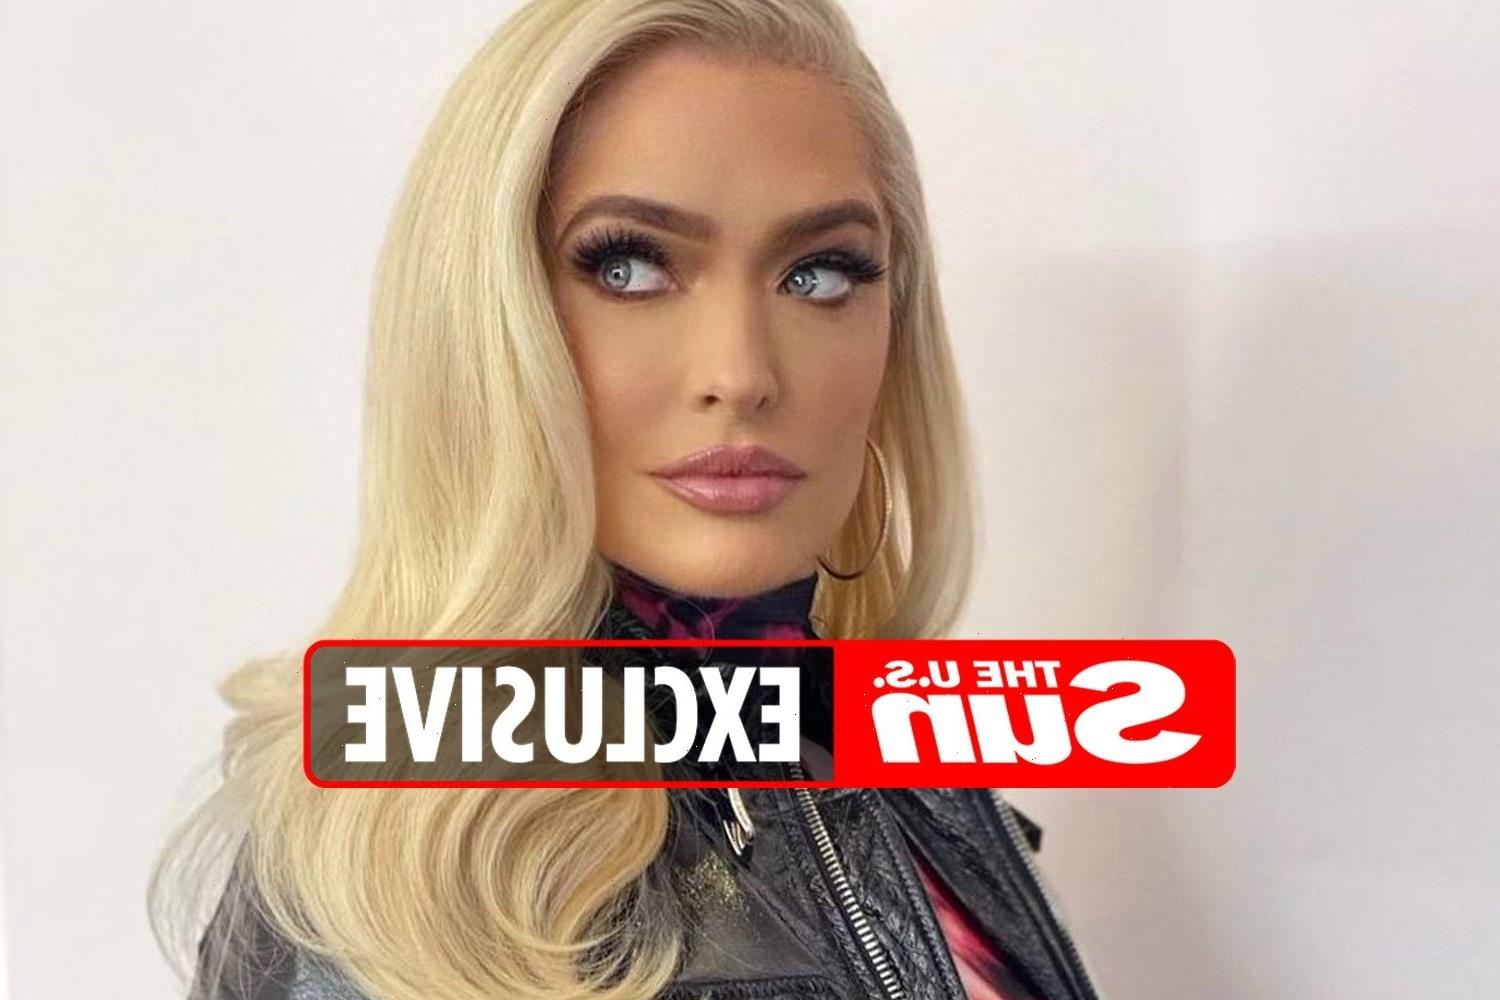 RHOBH's Erika Jayne 'refuses to give up her wealthy lifestyle' despite being dragged into bankruptcy case, lawyer claims